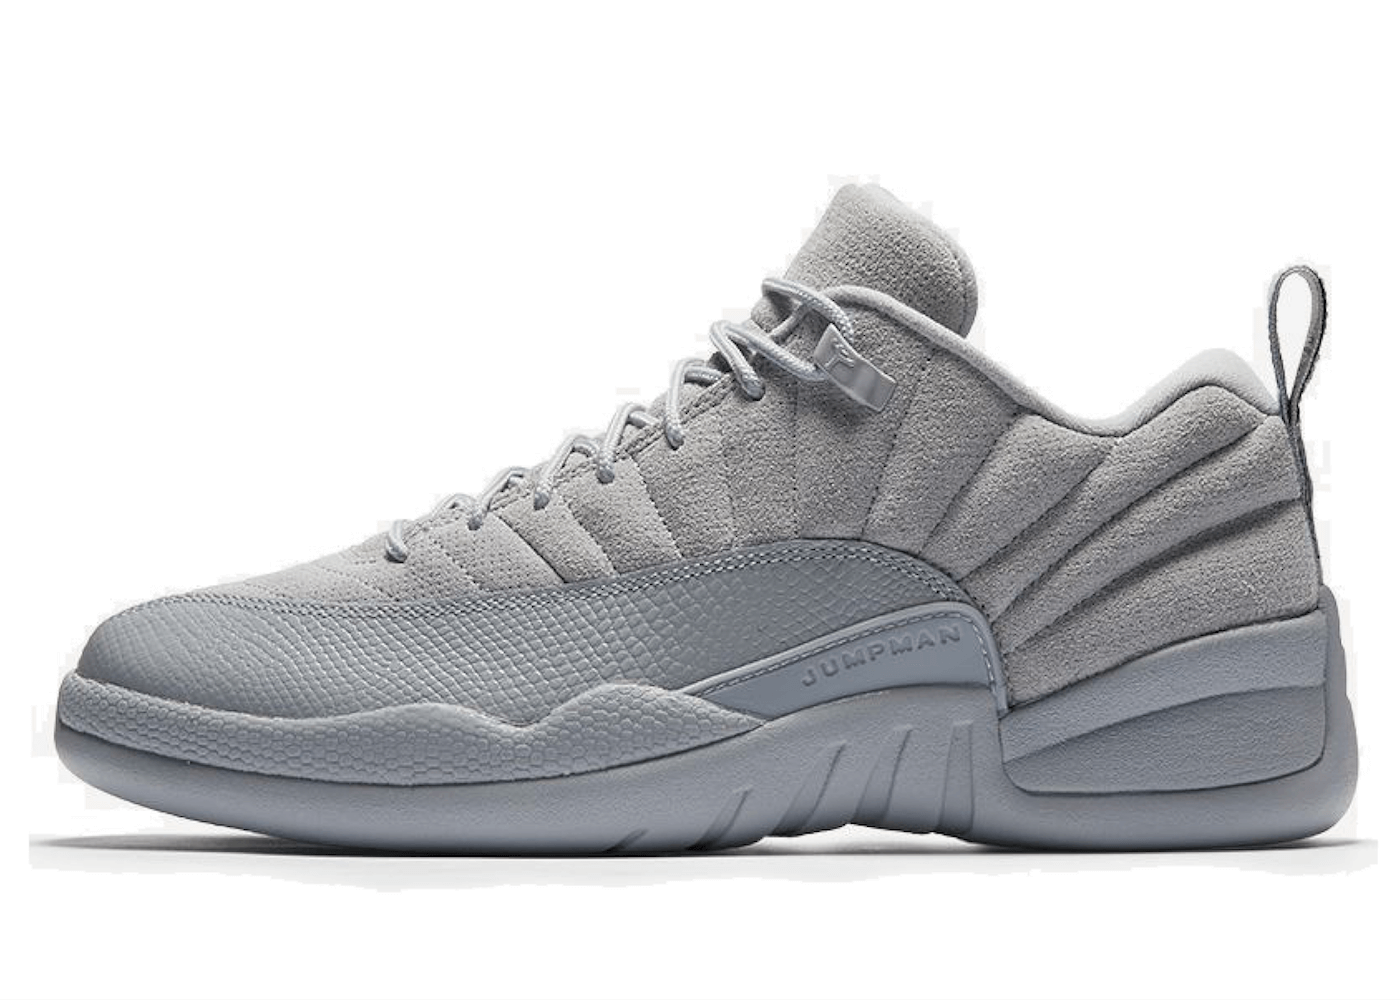 Jordan 12 Retro Low Wolf Greyの写真